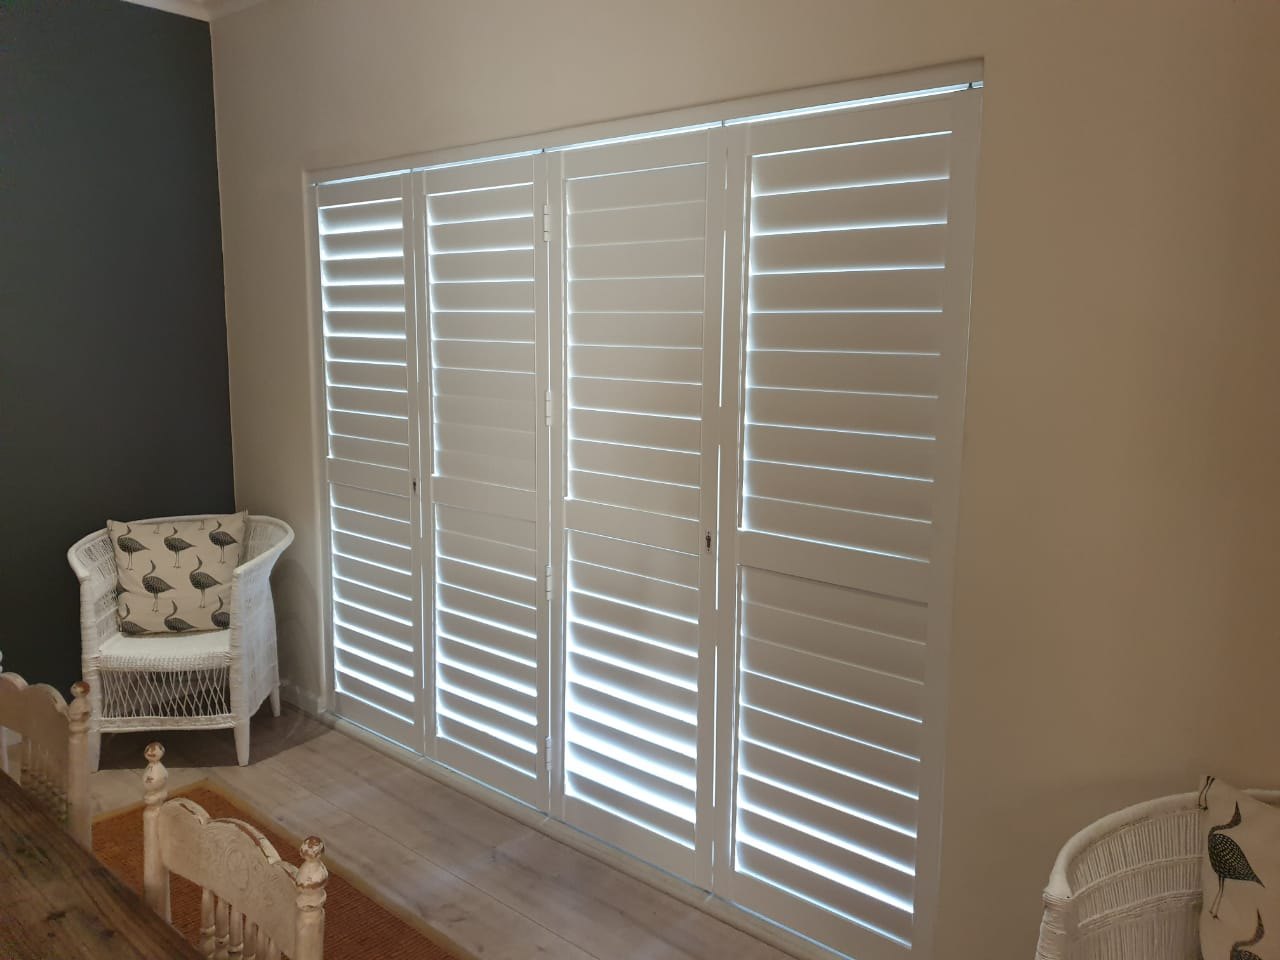 shutters - window shutters door shutters cape town - tlc flooring